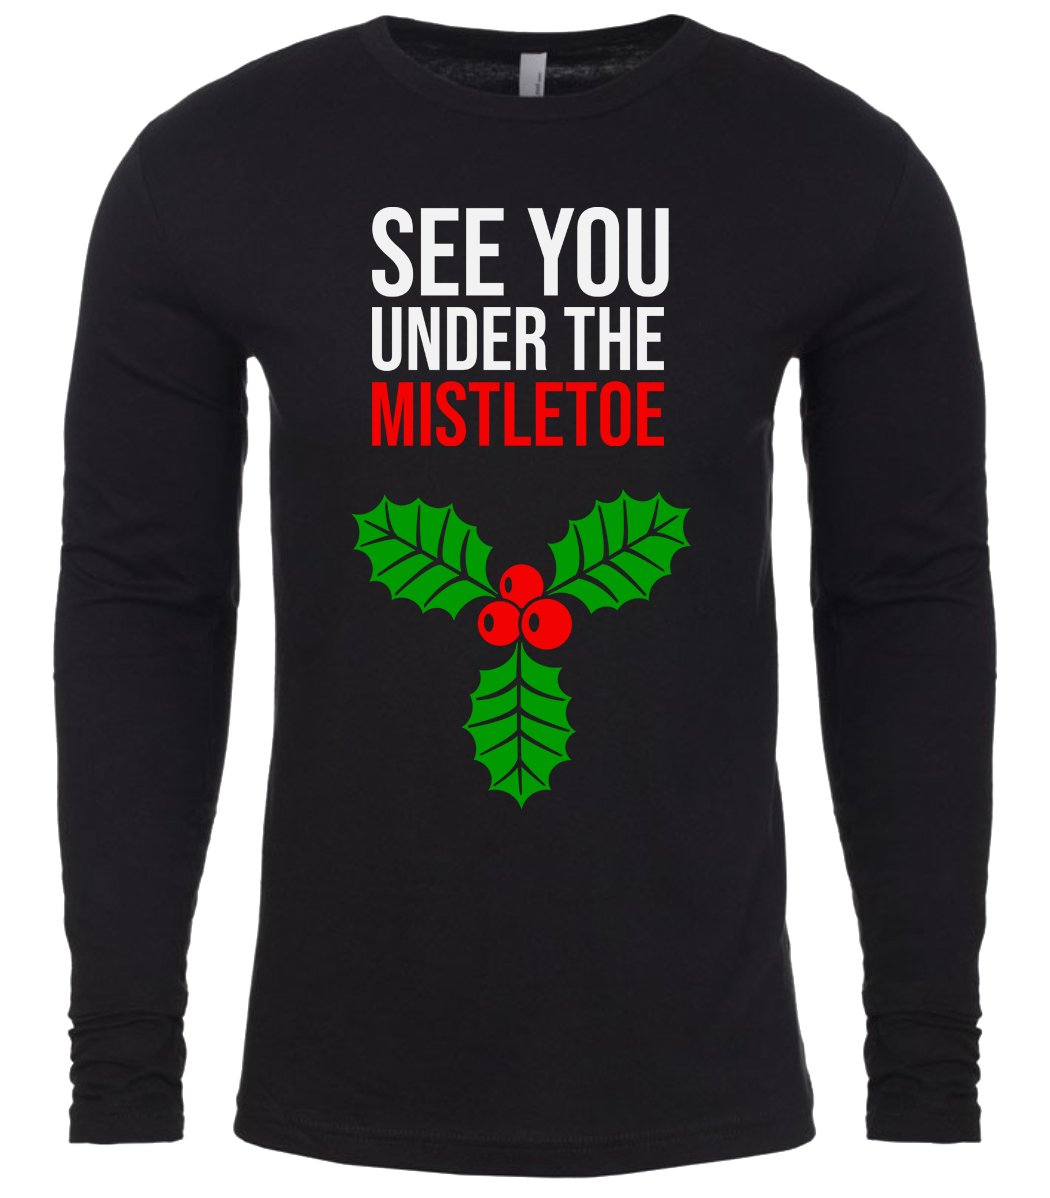 black under the mistletoe Christmas shirt for Men